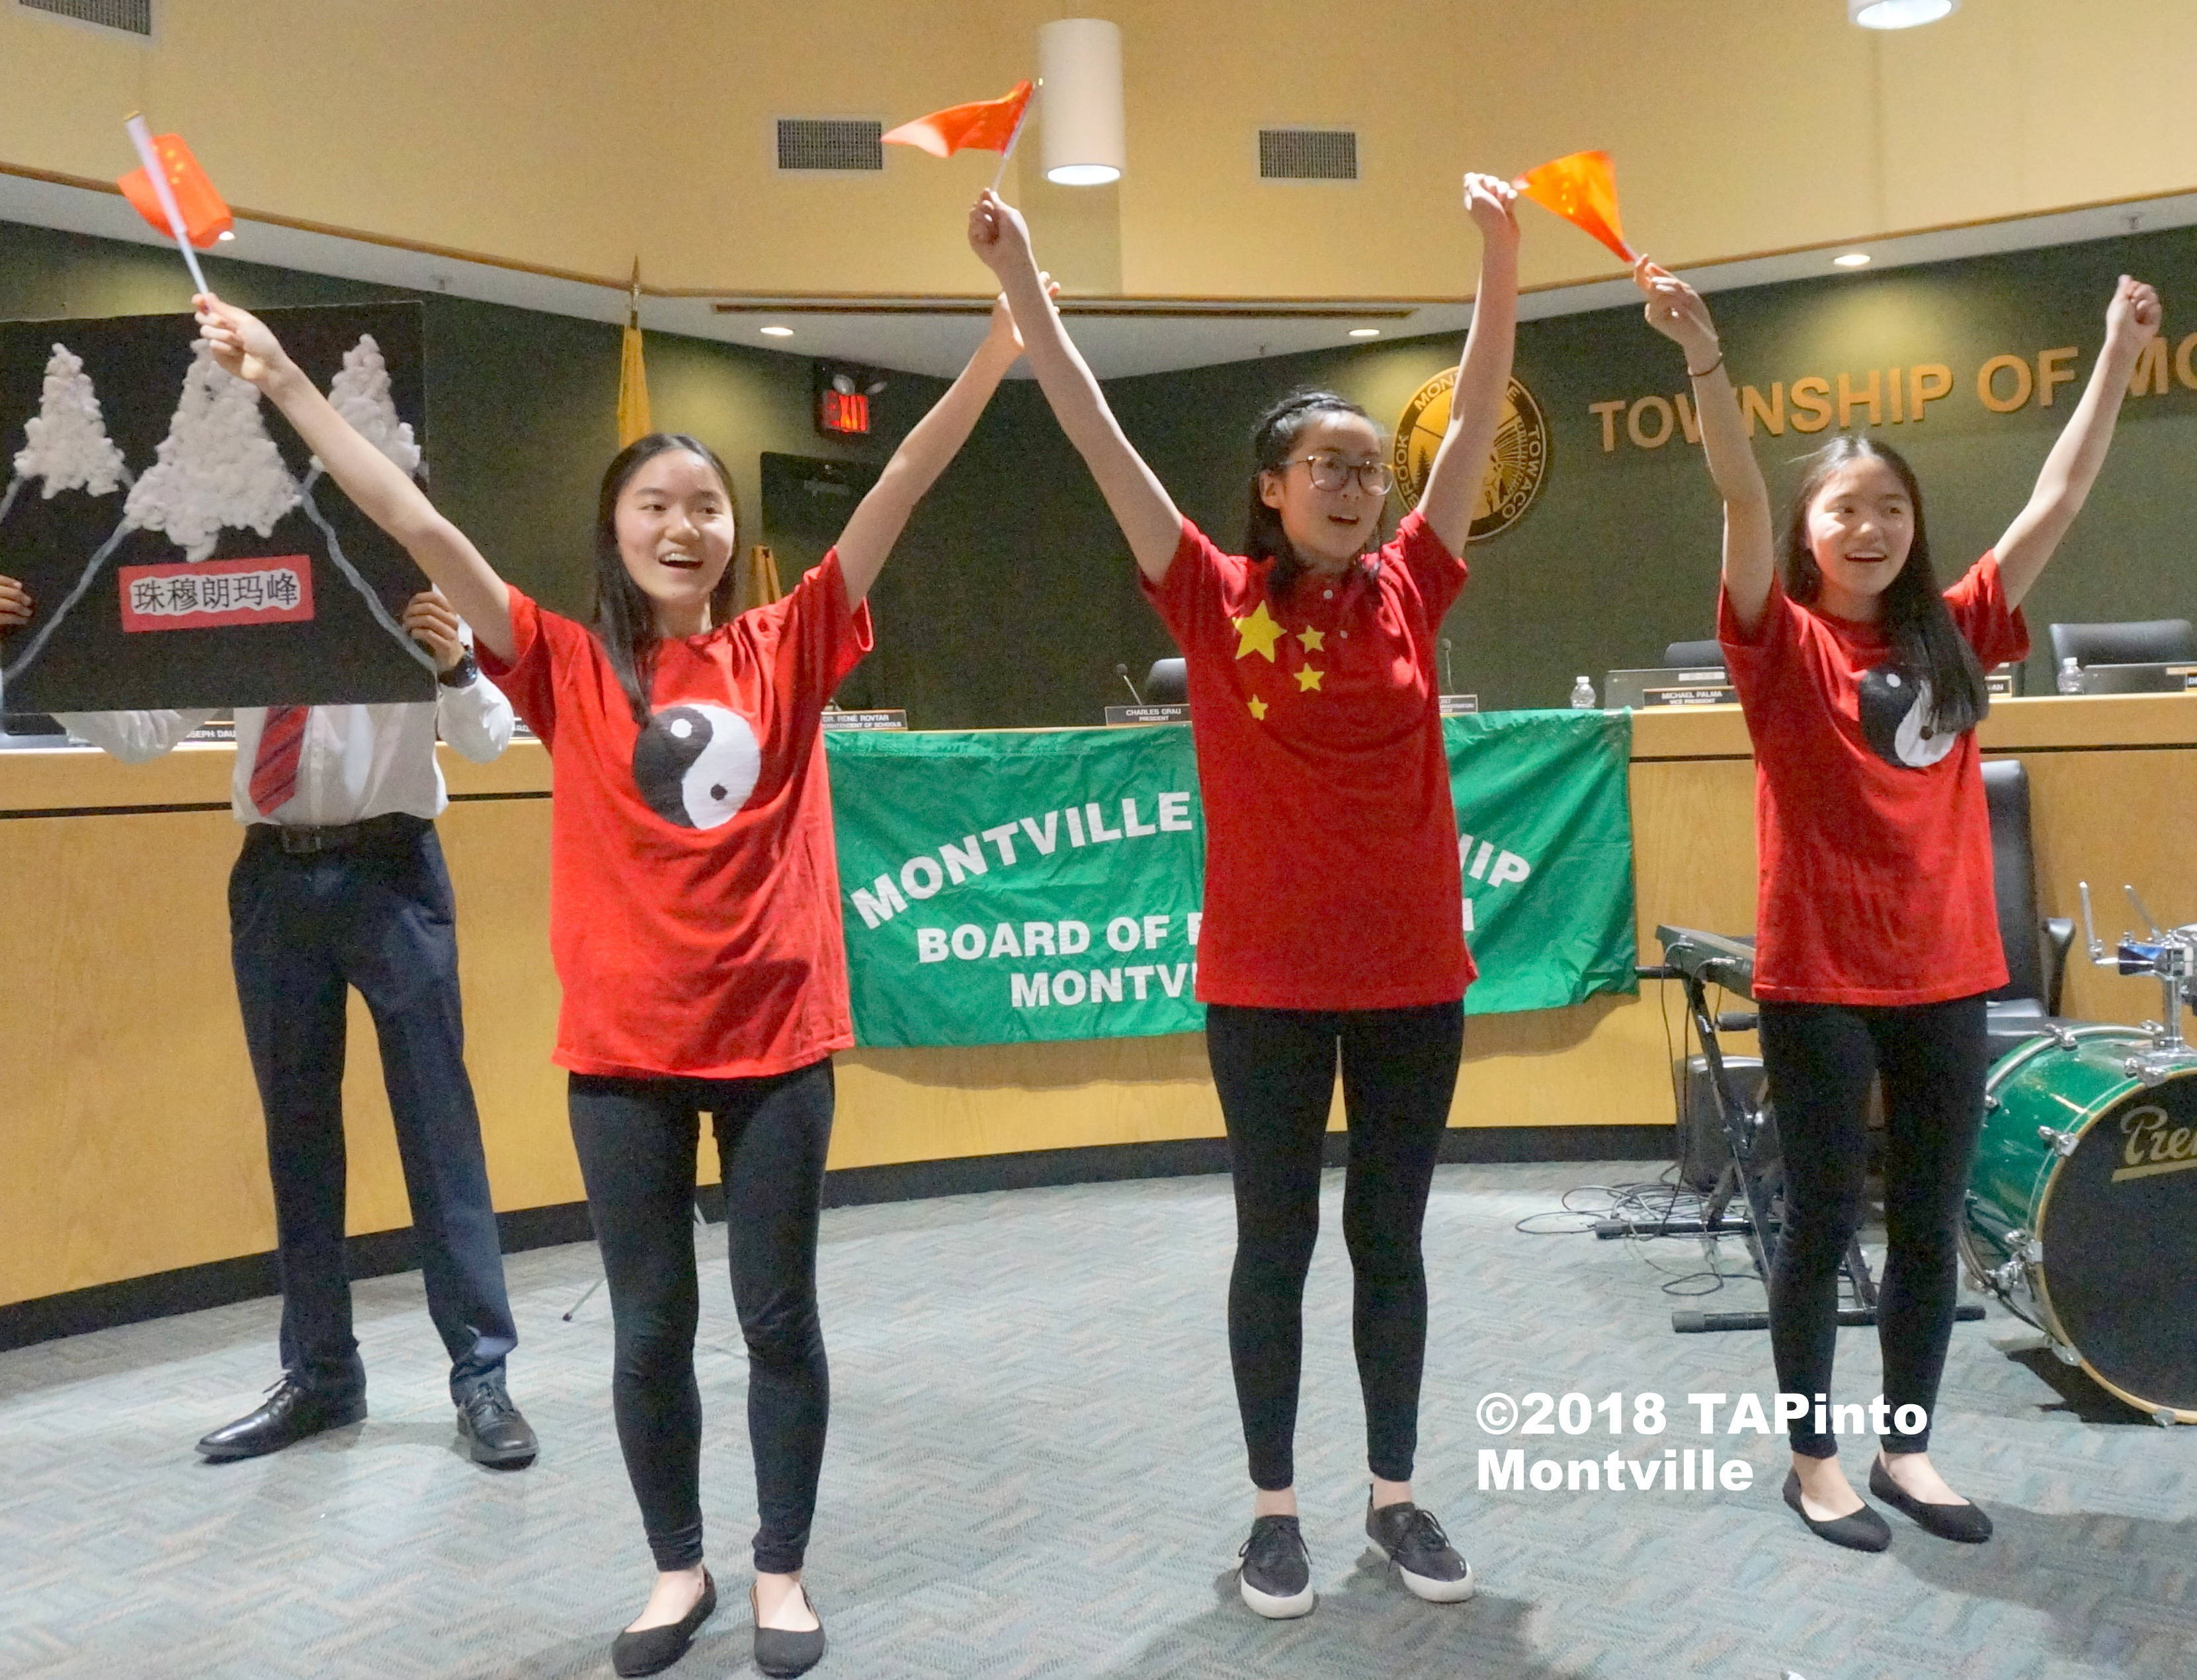 a4a52ee2e08b708ee3b5_a_MTHS_Students_of_Chinese_language_give_their_award-winning_presentation__2018_TAPinto_Montville.JPG